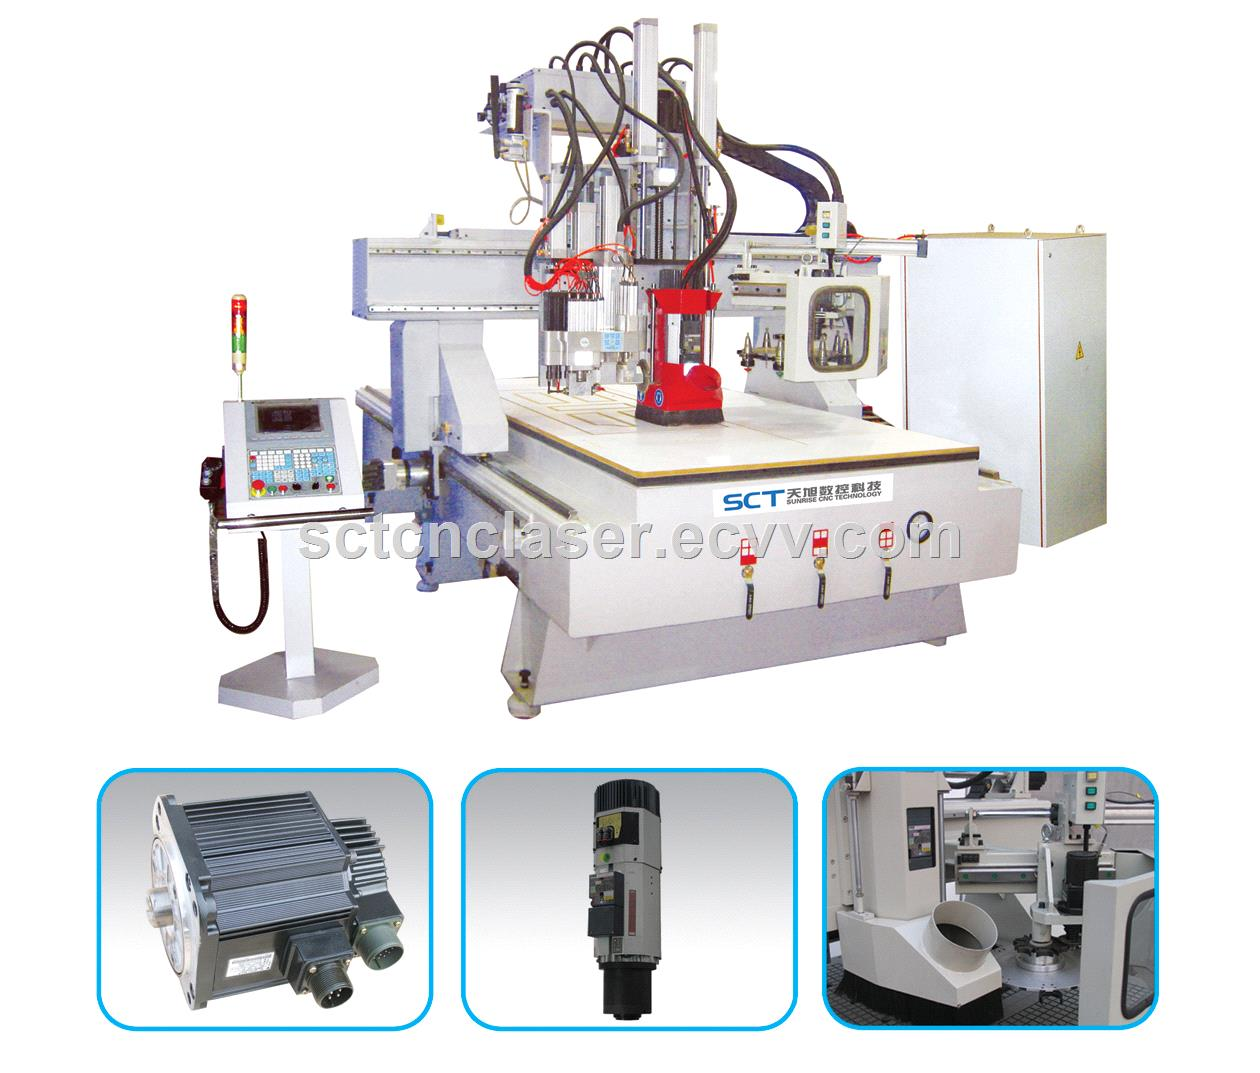 SCTW1325C Engraving Cutting Metal Nonmetal Materials ATC CNC Router